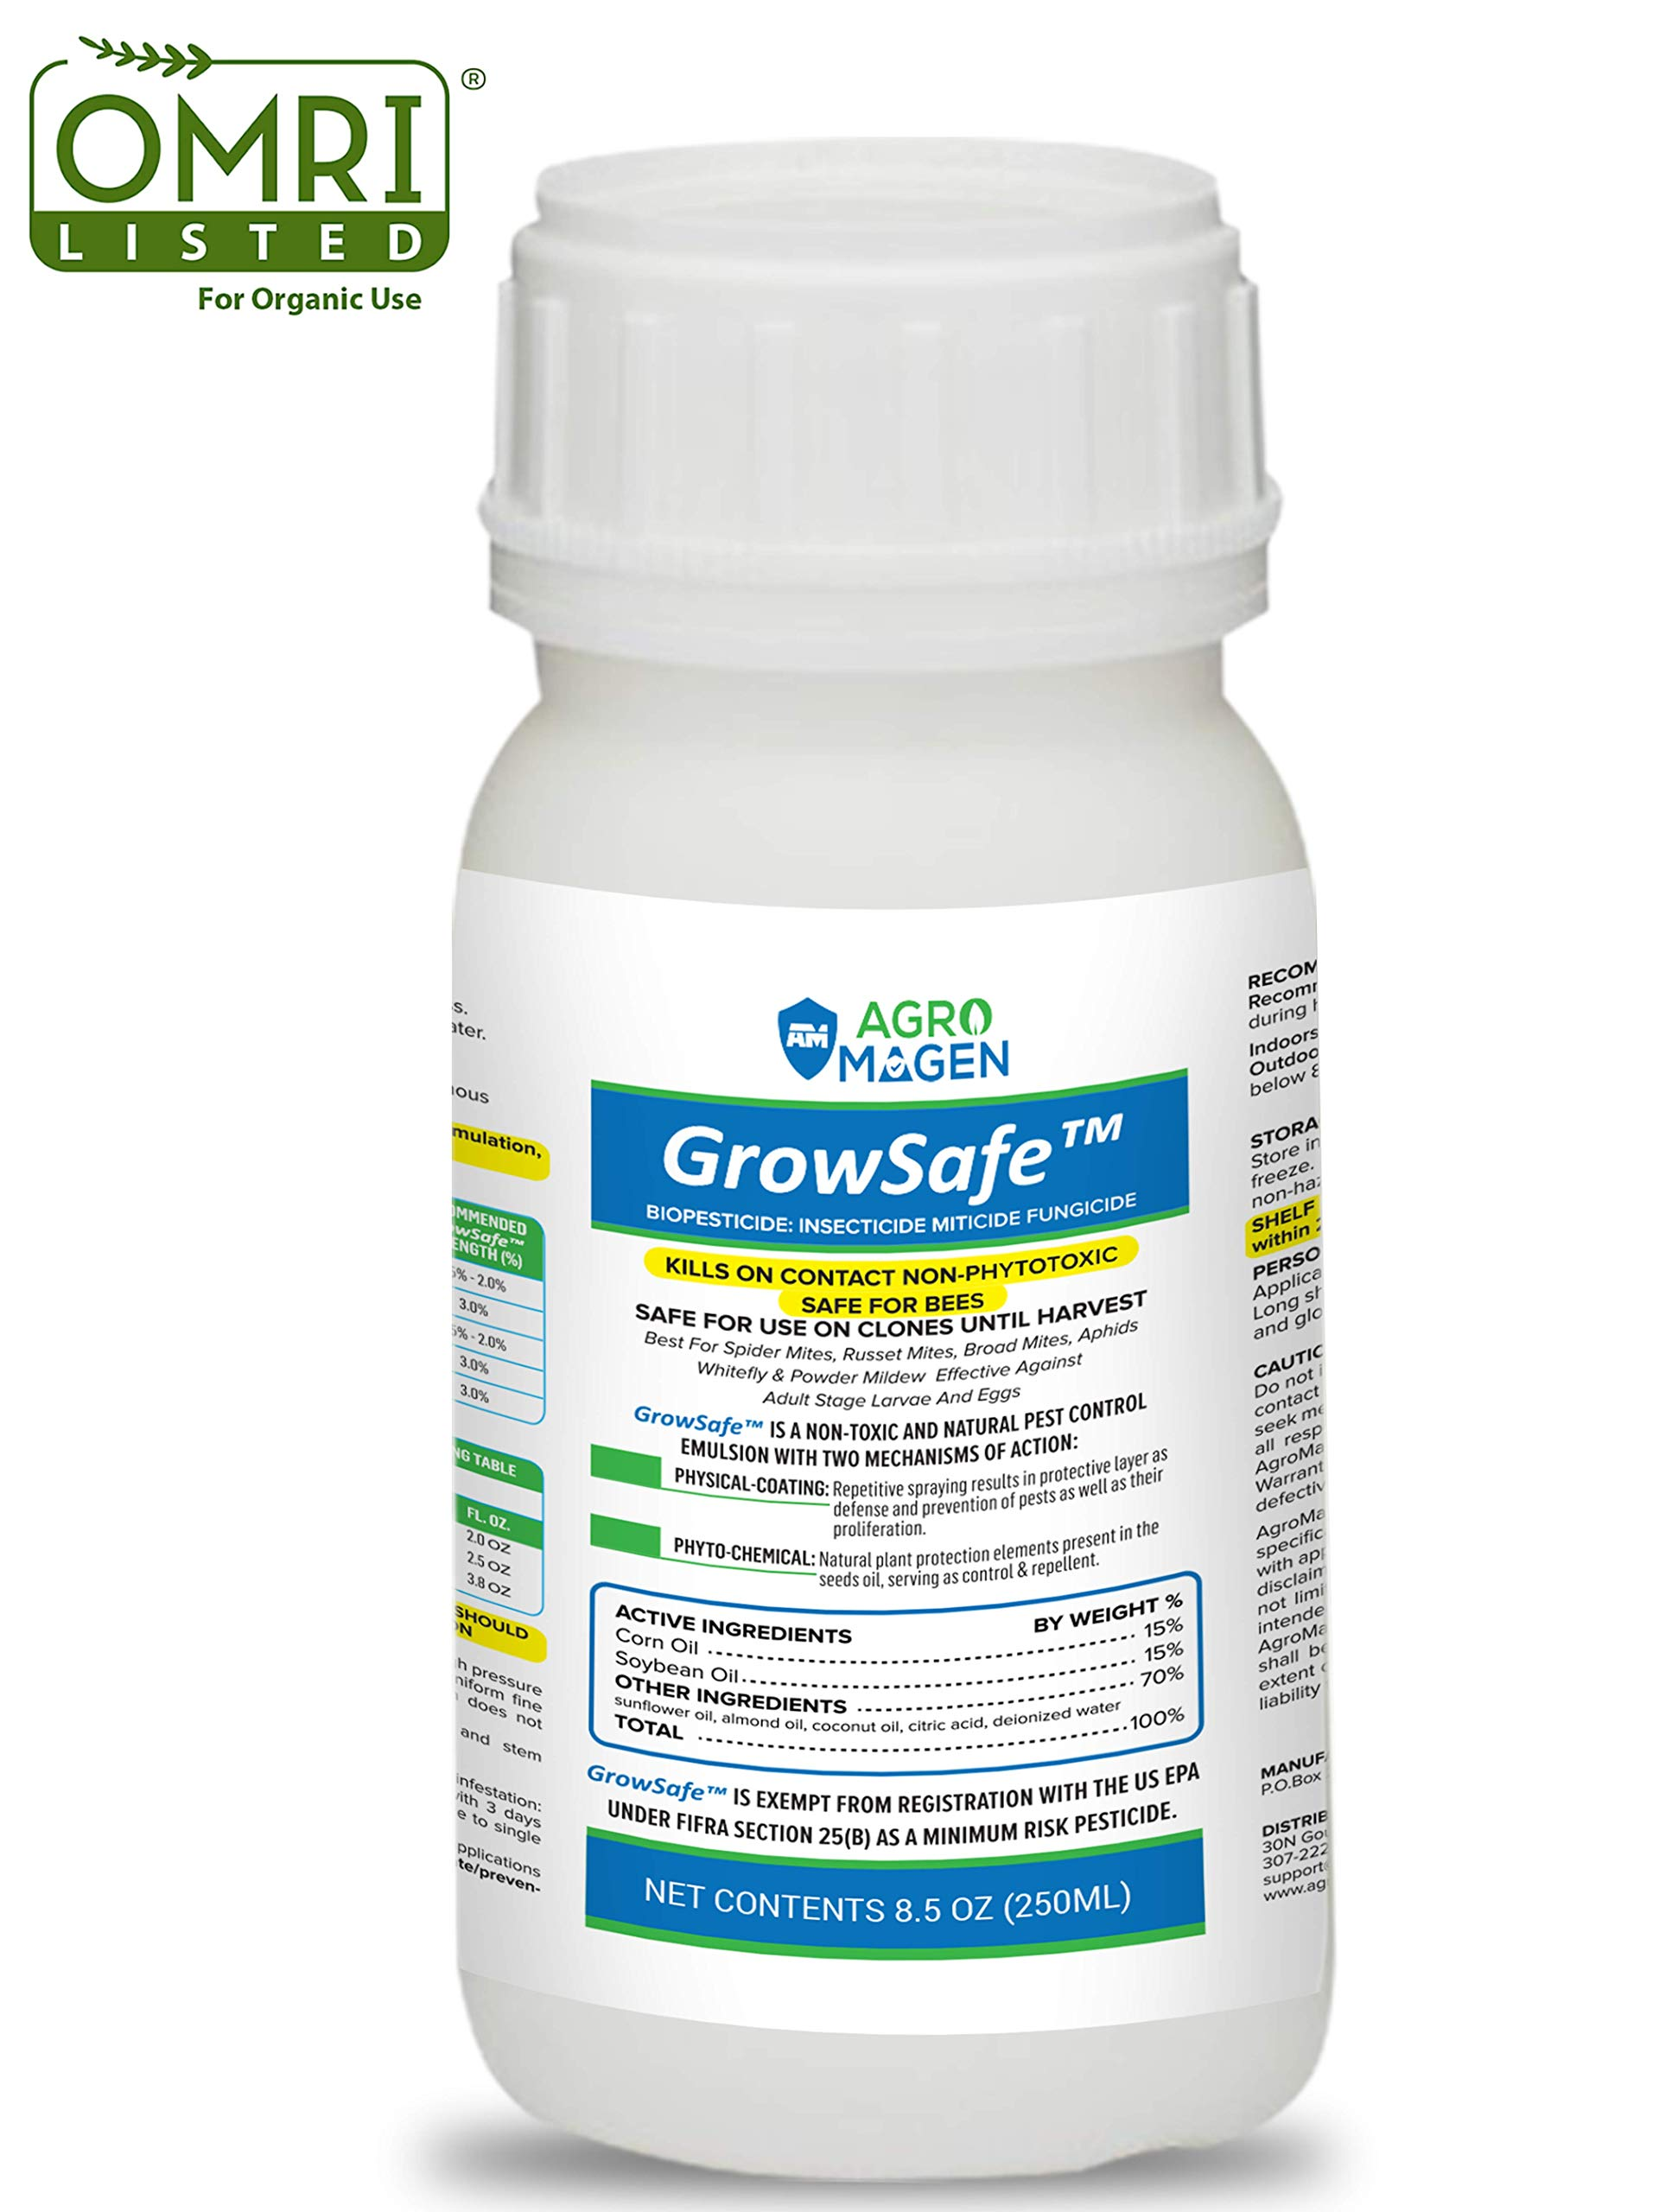 GrowSafe Bio-Pesticide Organic All-Natural Miticide,Fungicide Insecticide. Better and Safer Than Other Oils for Plants,Non-Toxic,Control Spider Mites, Powdery Mildew.Non-Phytotoxic,Concentrate (8.5oz) by AgroMagen